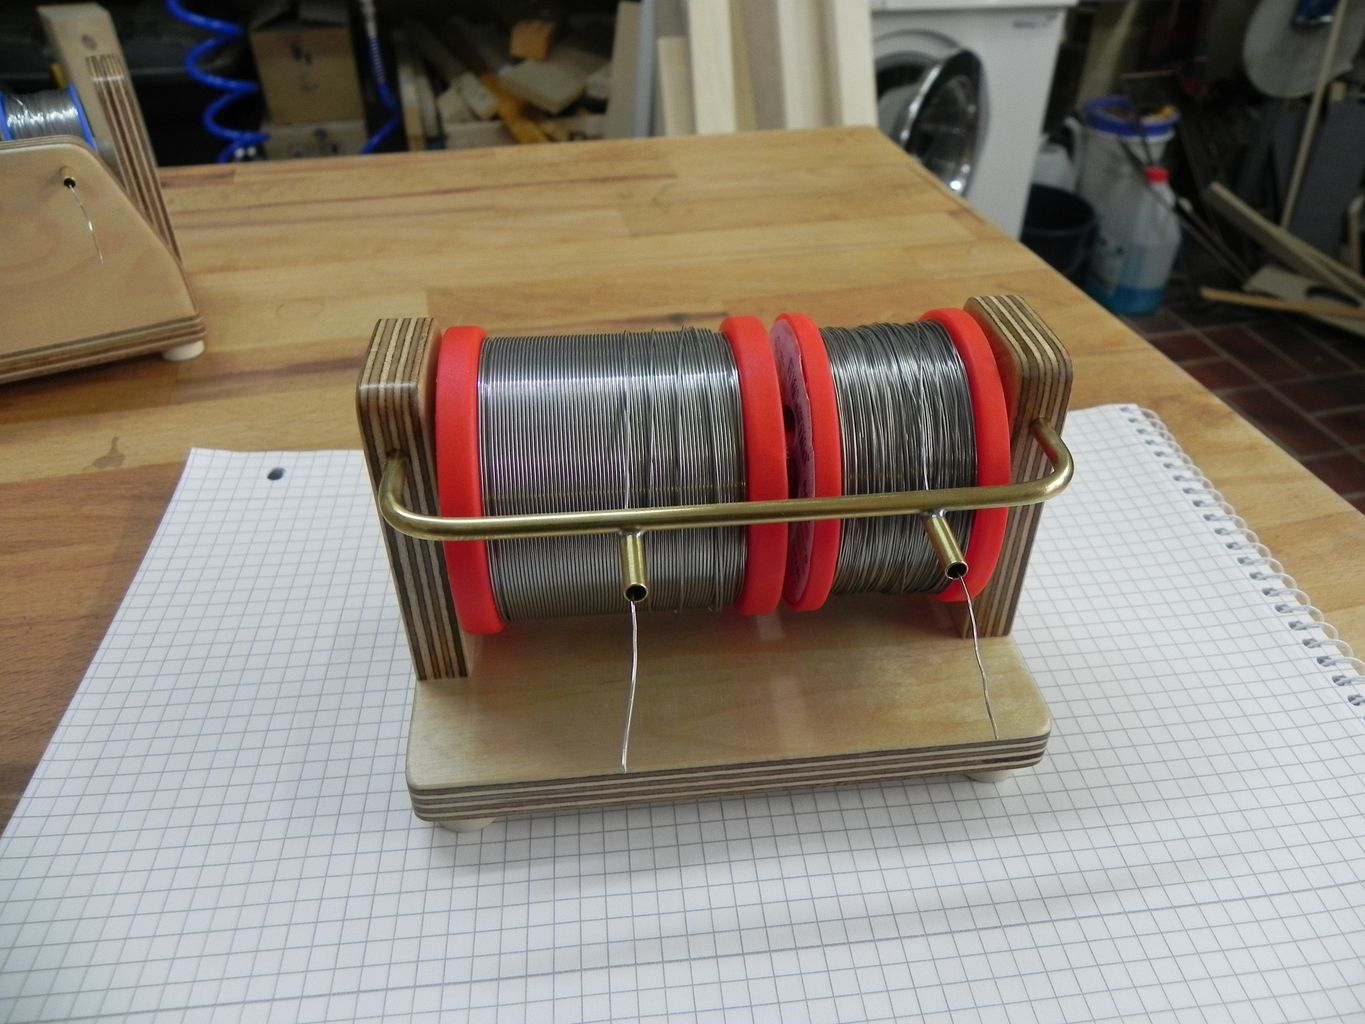 DIY solder reel holder